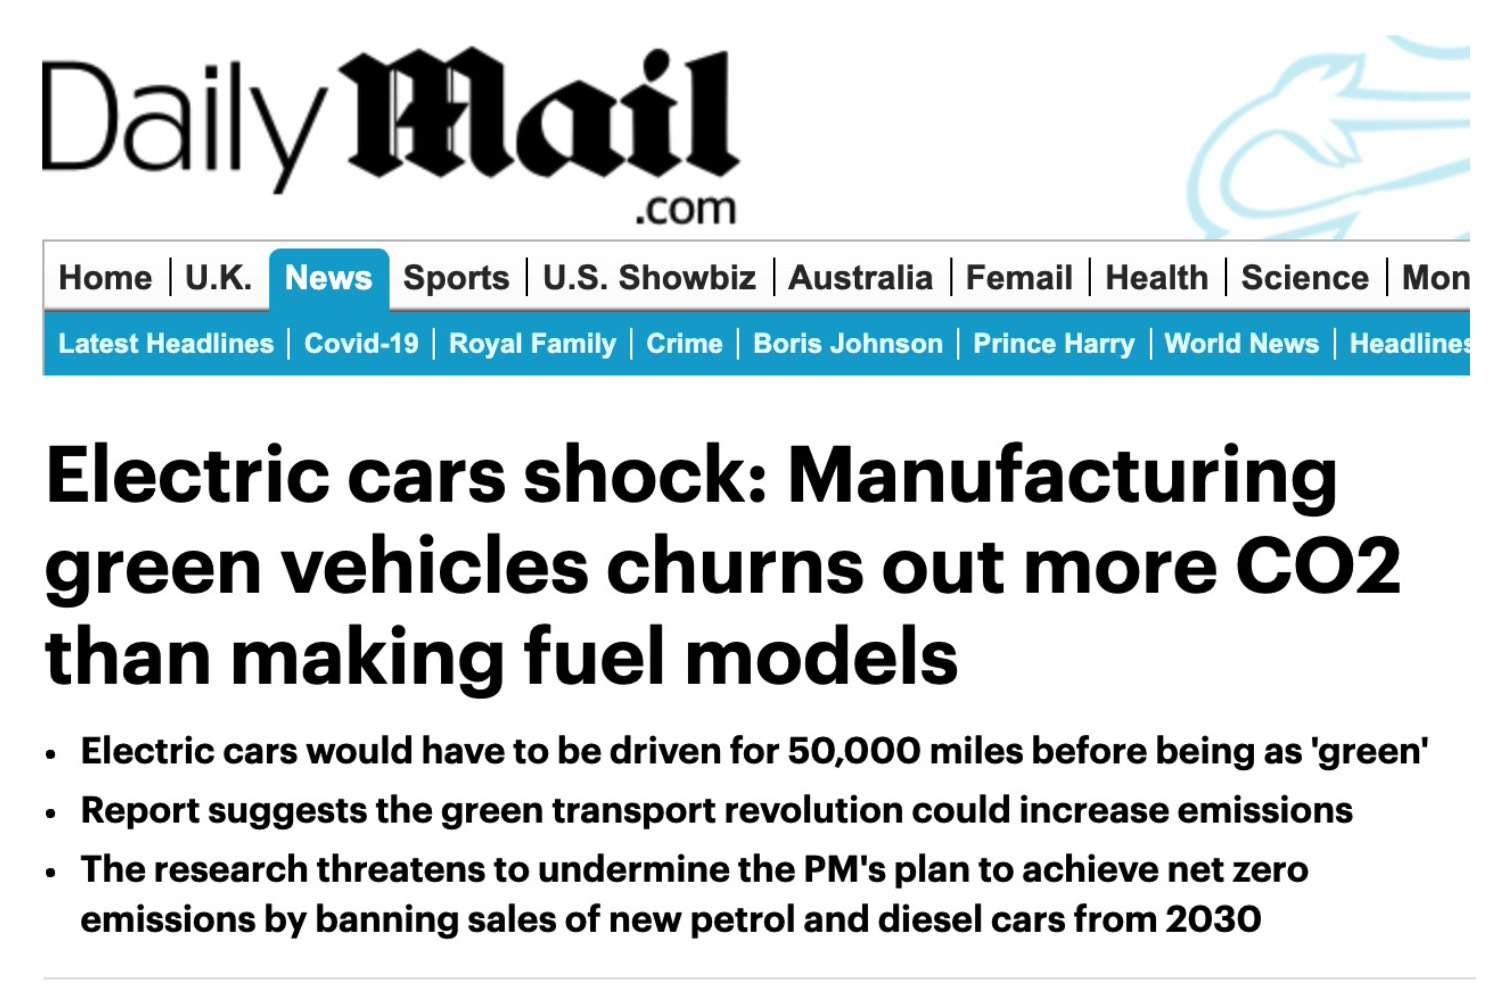 Daily mail electric shock